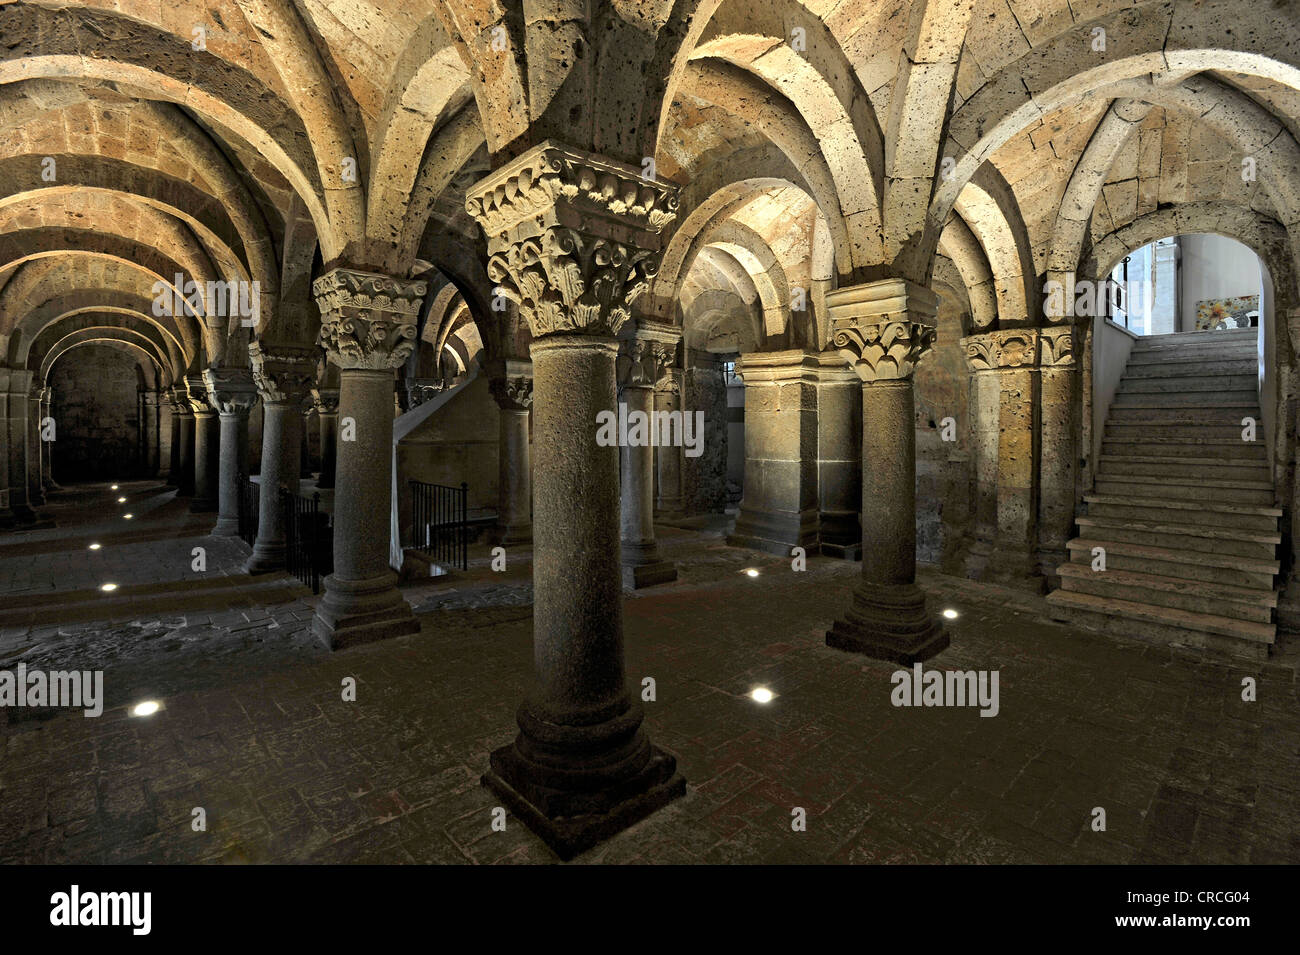 Column capitals in the underground pillared hall of the pagan crypt, 10th century, Cathedral of St. Sepulchre, Basilica - Stock Image